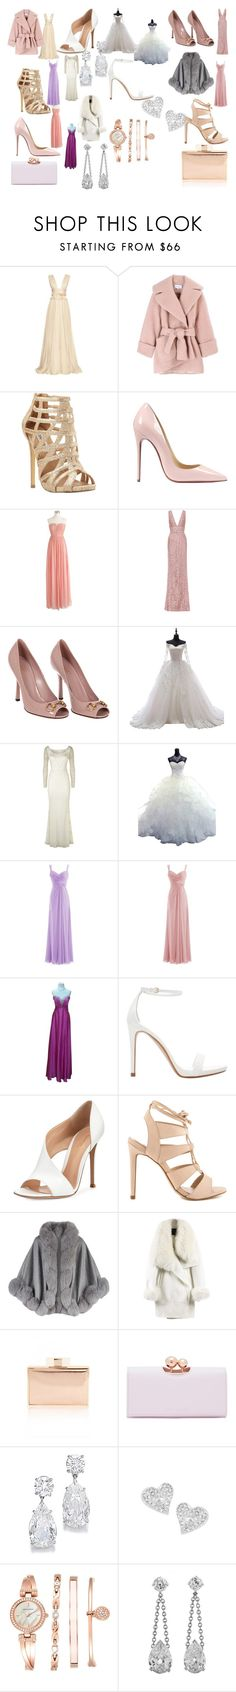 """""""Wedding Ideas #1"""" by tinanichols402 on Polyvore featuring Maria Lucia Hohan, Carven, Steve Madden, Christian Louboutin, J.Crew, Elie Saab, Gucci, Monsoon, Impression Bridal and Zara"""